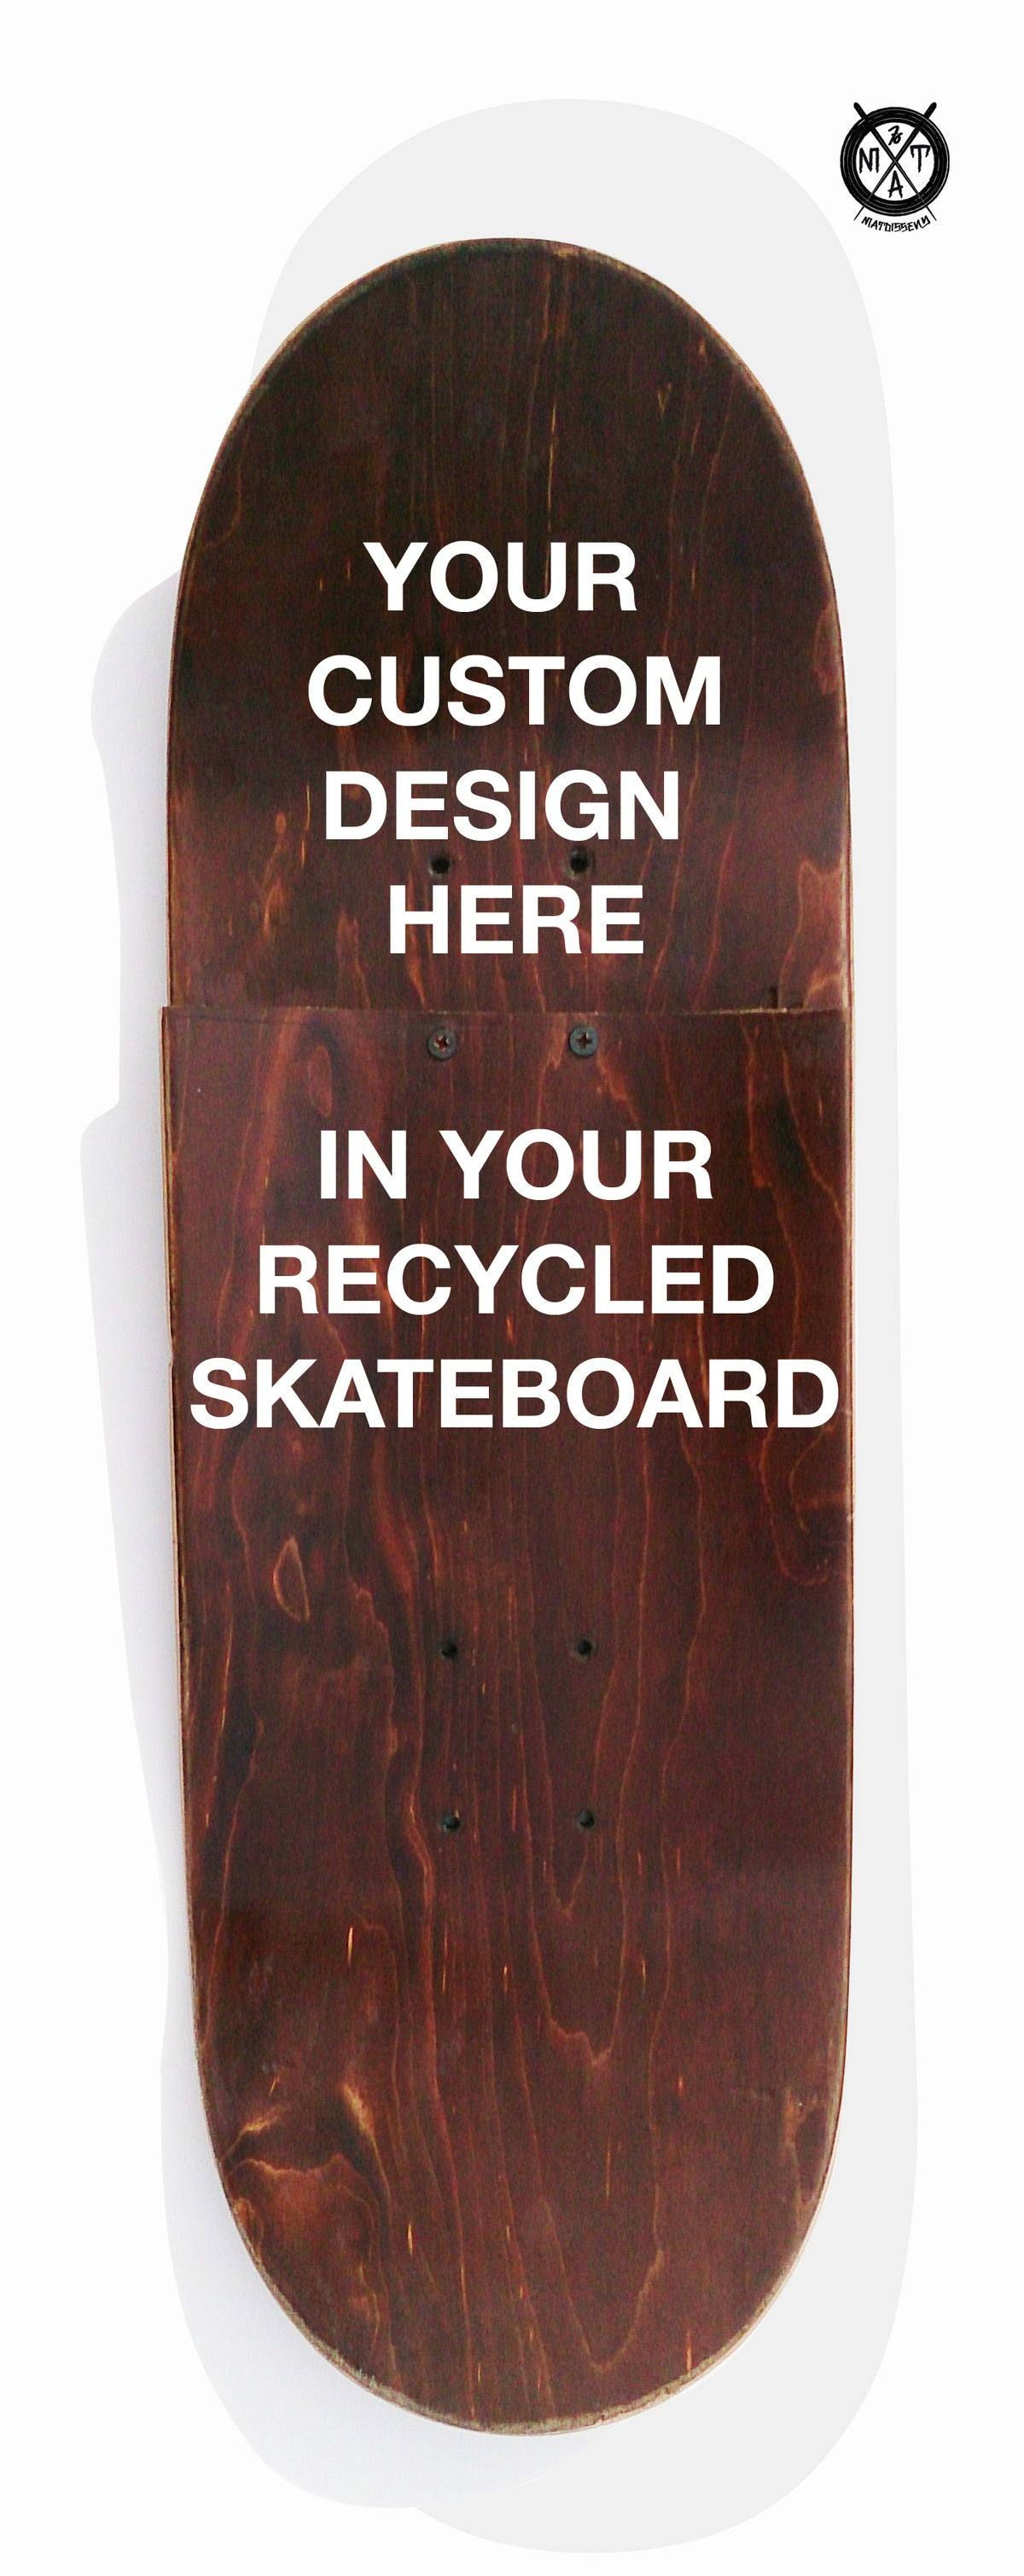 Image of Skate Art (Commision Artwork in your recycled Skateboard) by @matdisseny